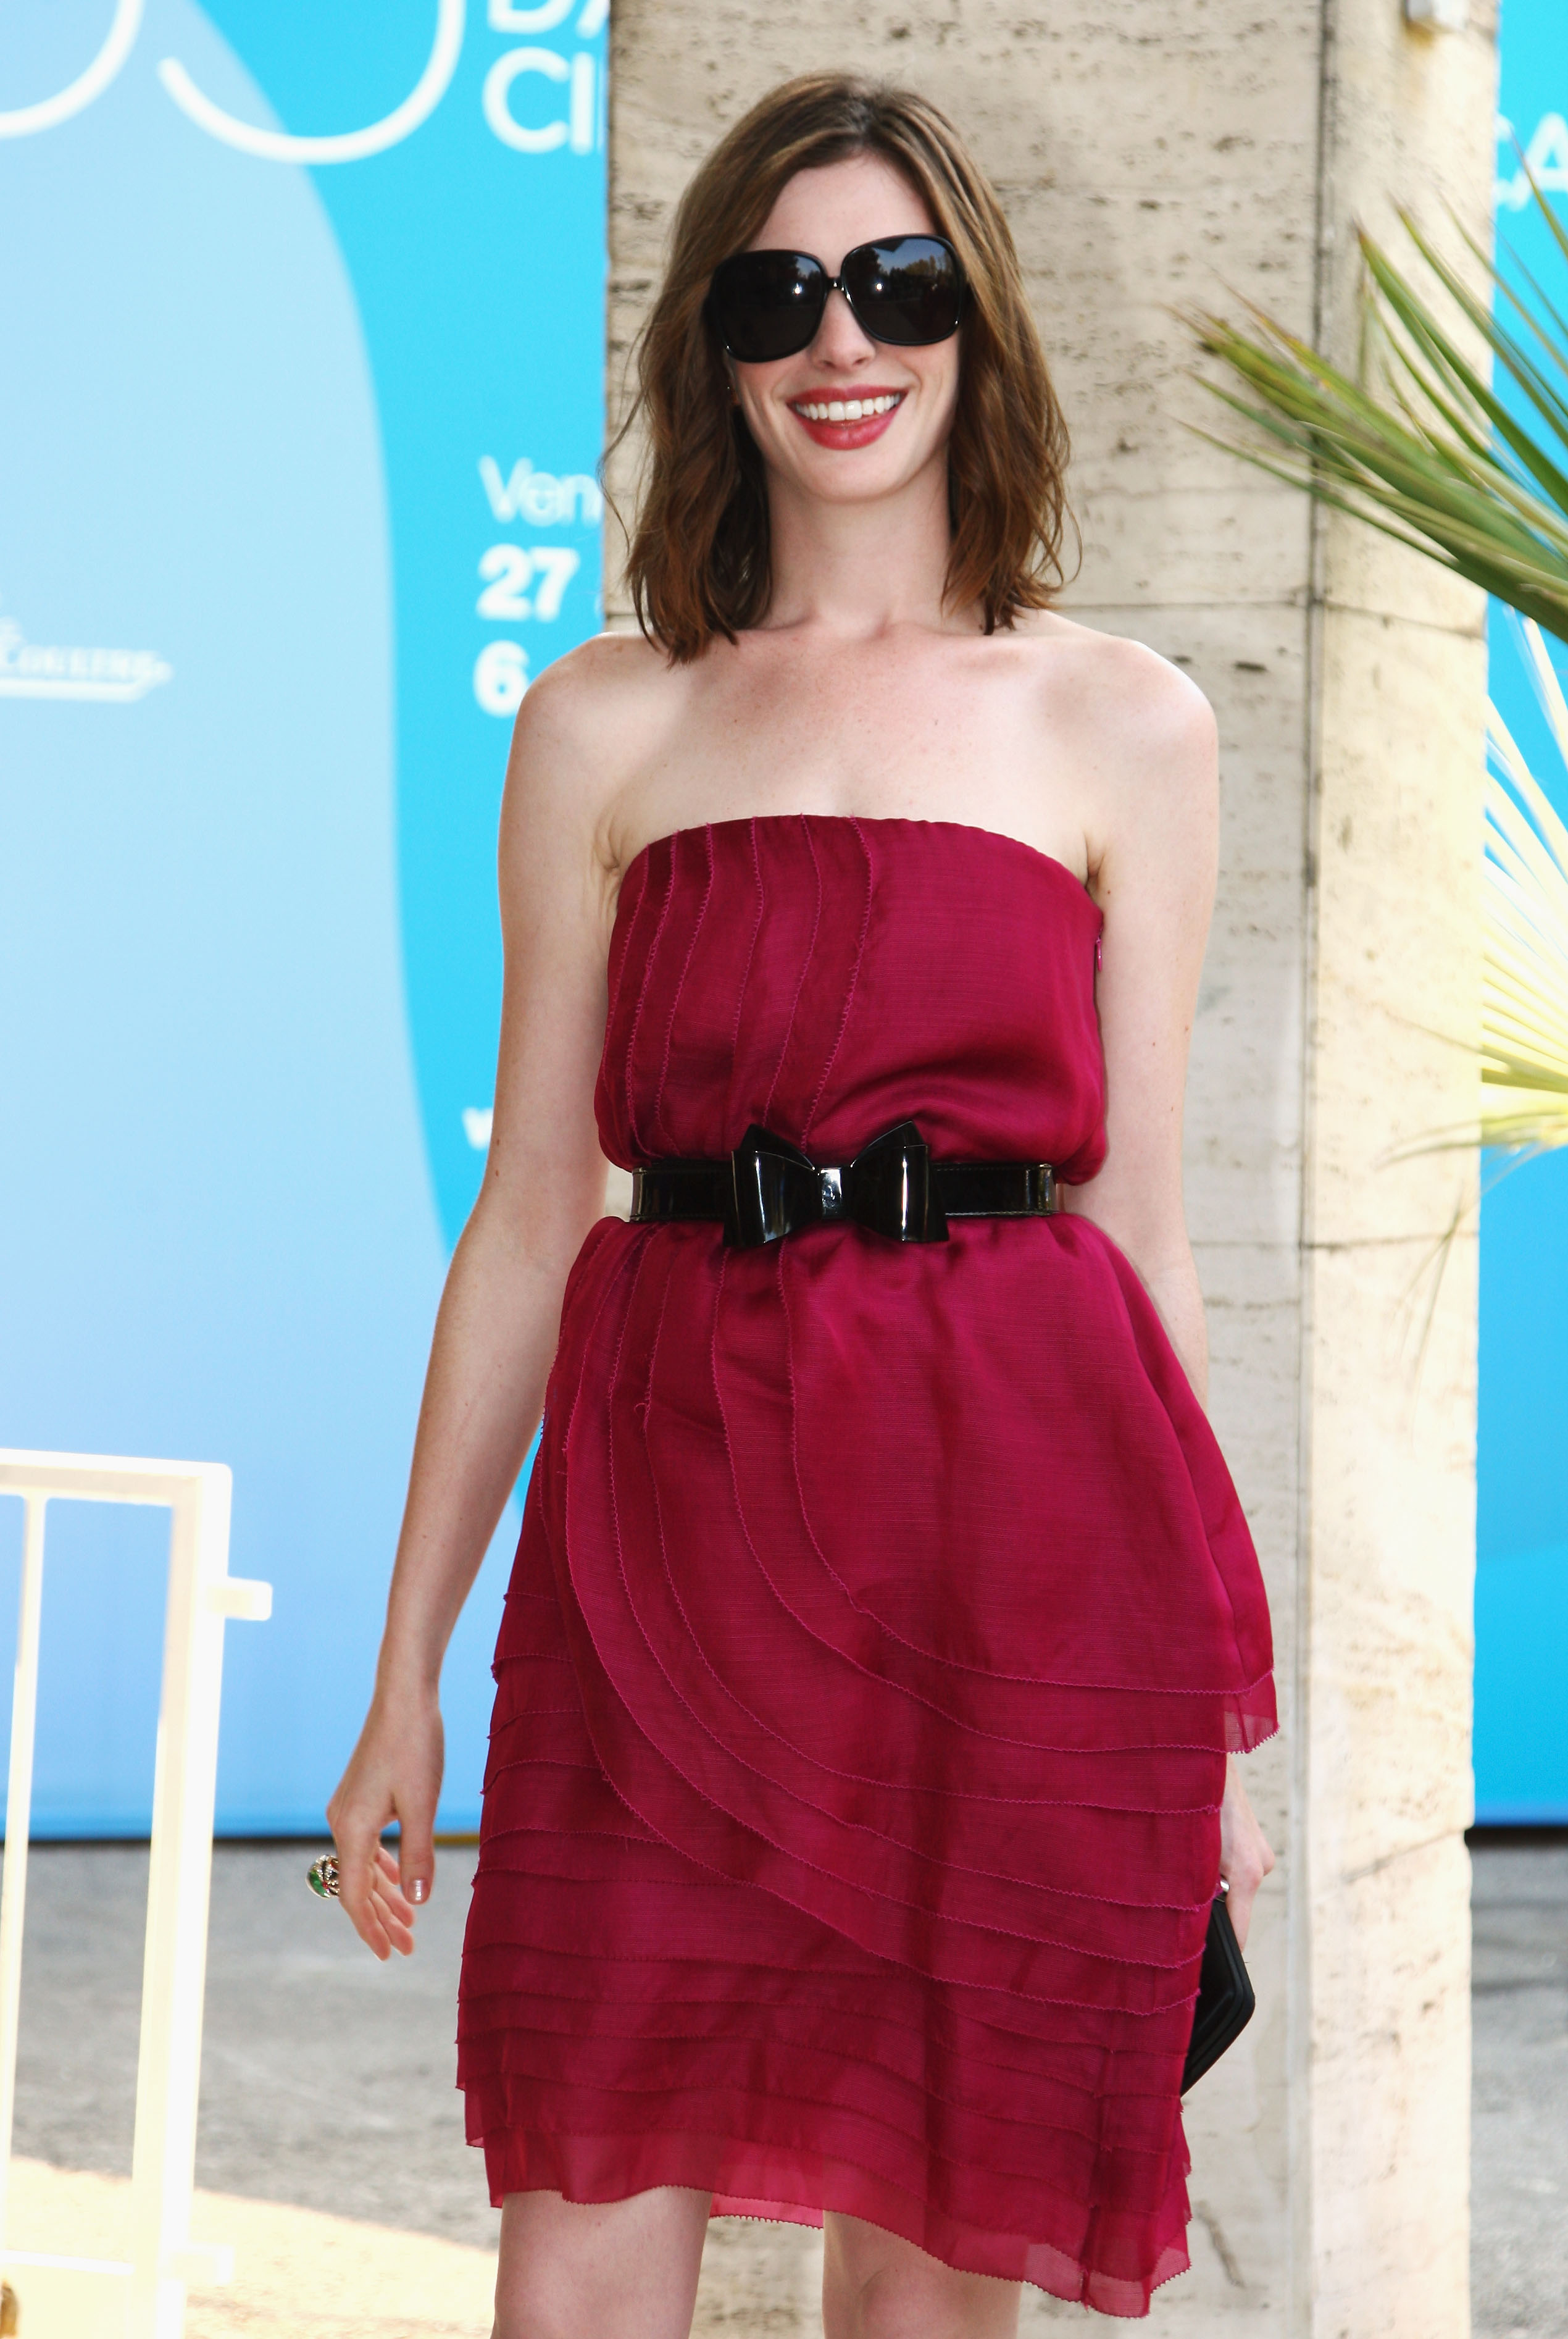 43178_Anne_Hathaway_arrives_at_the_Excelsior_Hotel_Venice-02_122_487lo.jpg